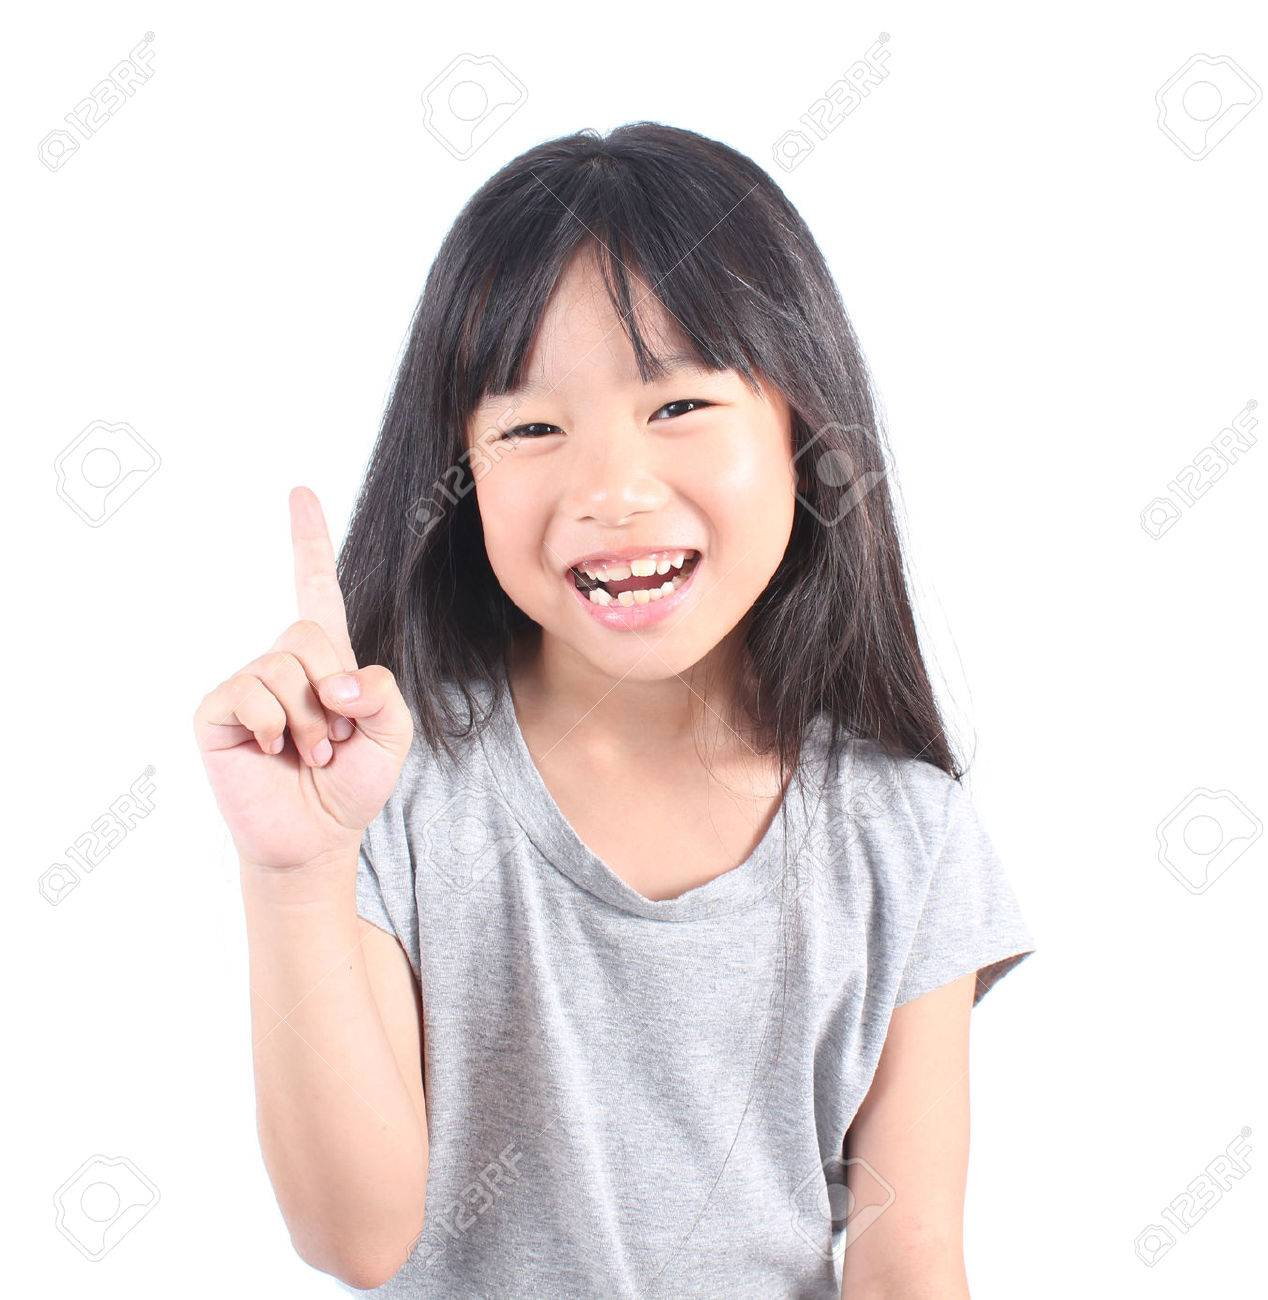 Little girl pointing up with her finger - 51688213